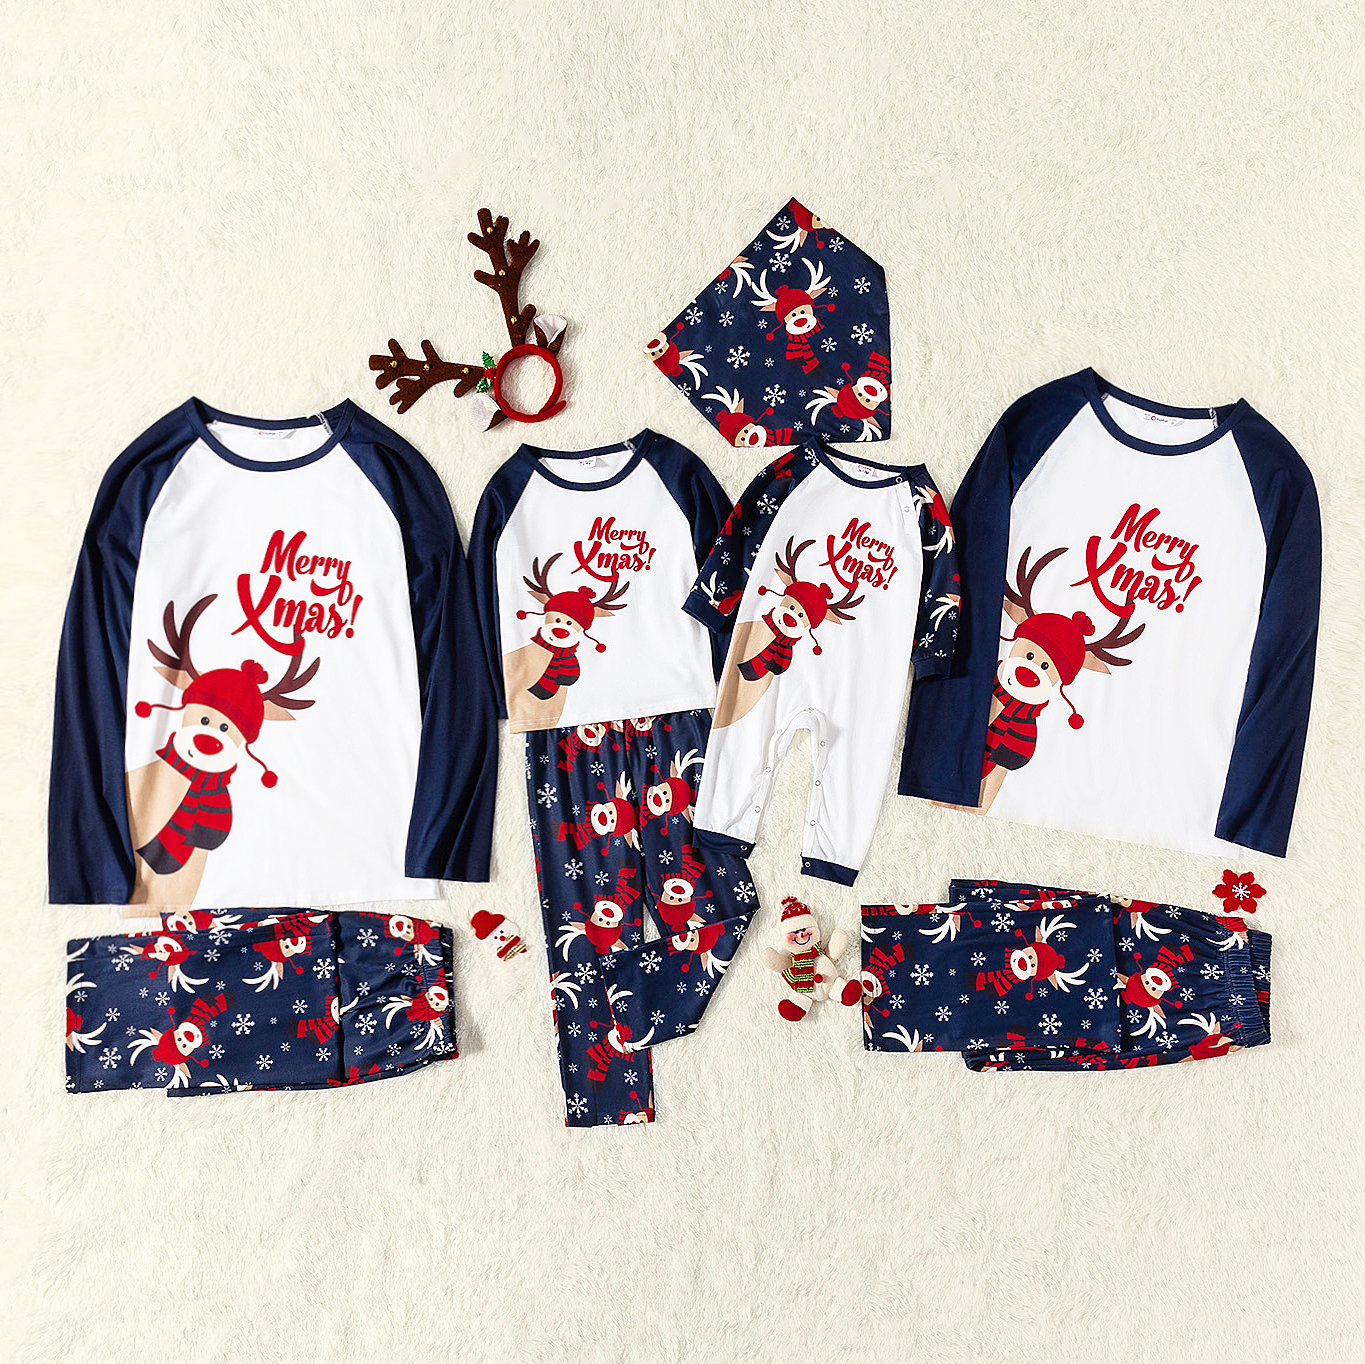 Merry Xmas Letters and Reindeer Print Navy Family Matching Long-sleeve Pajamas Sets (Flame Resistant)